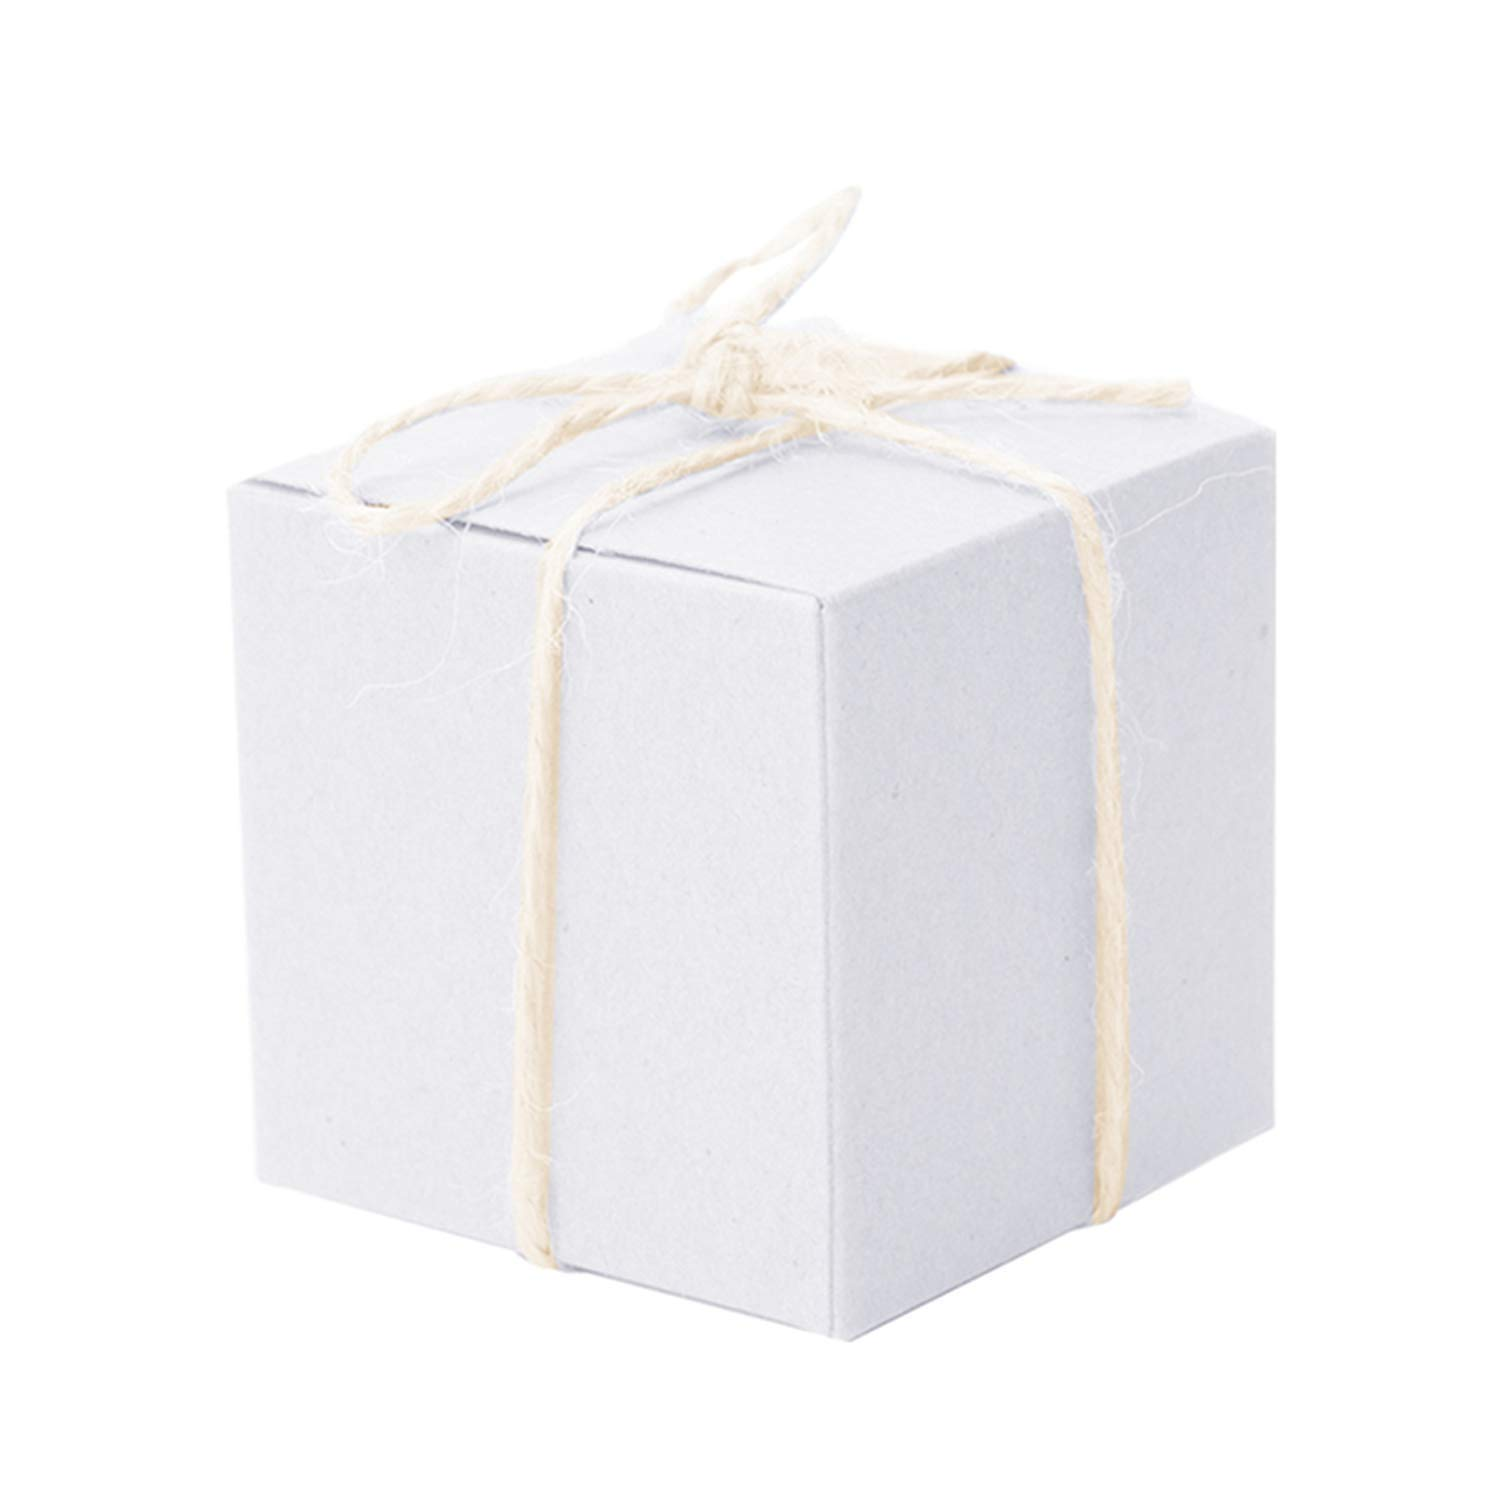 50Pcs Paper Candy Box Square Shape Wedding Favor Gift Party Supply Packaging Bag with Burlap Twine Chic,White